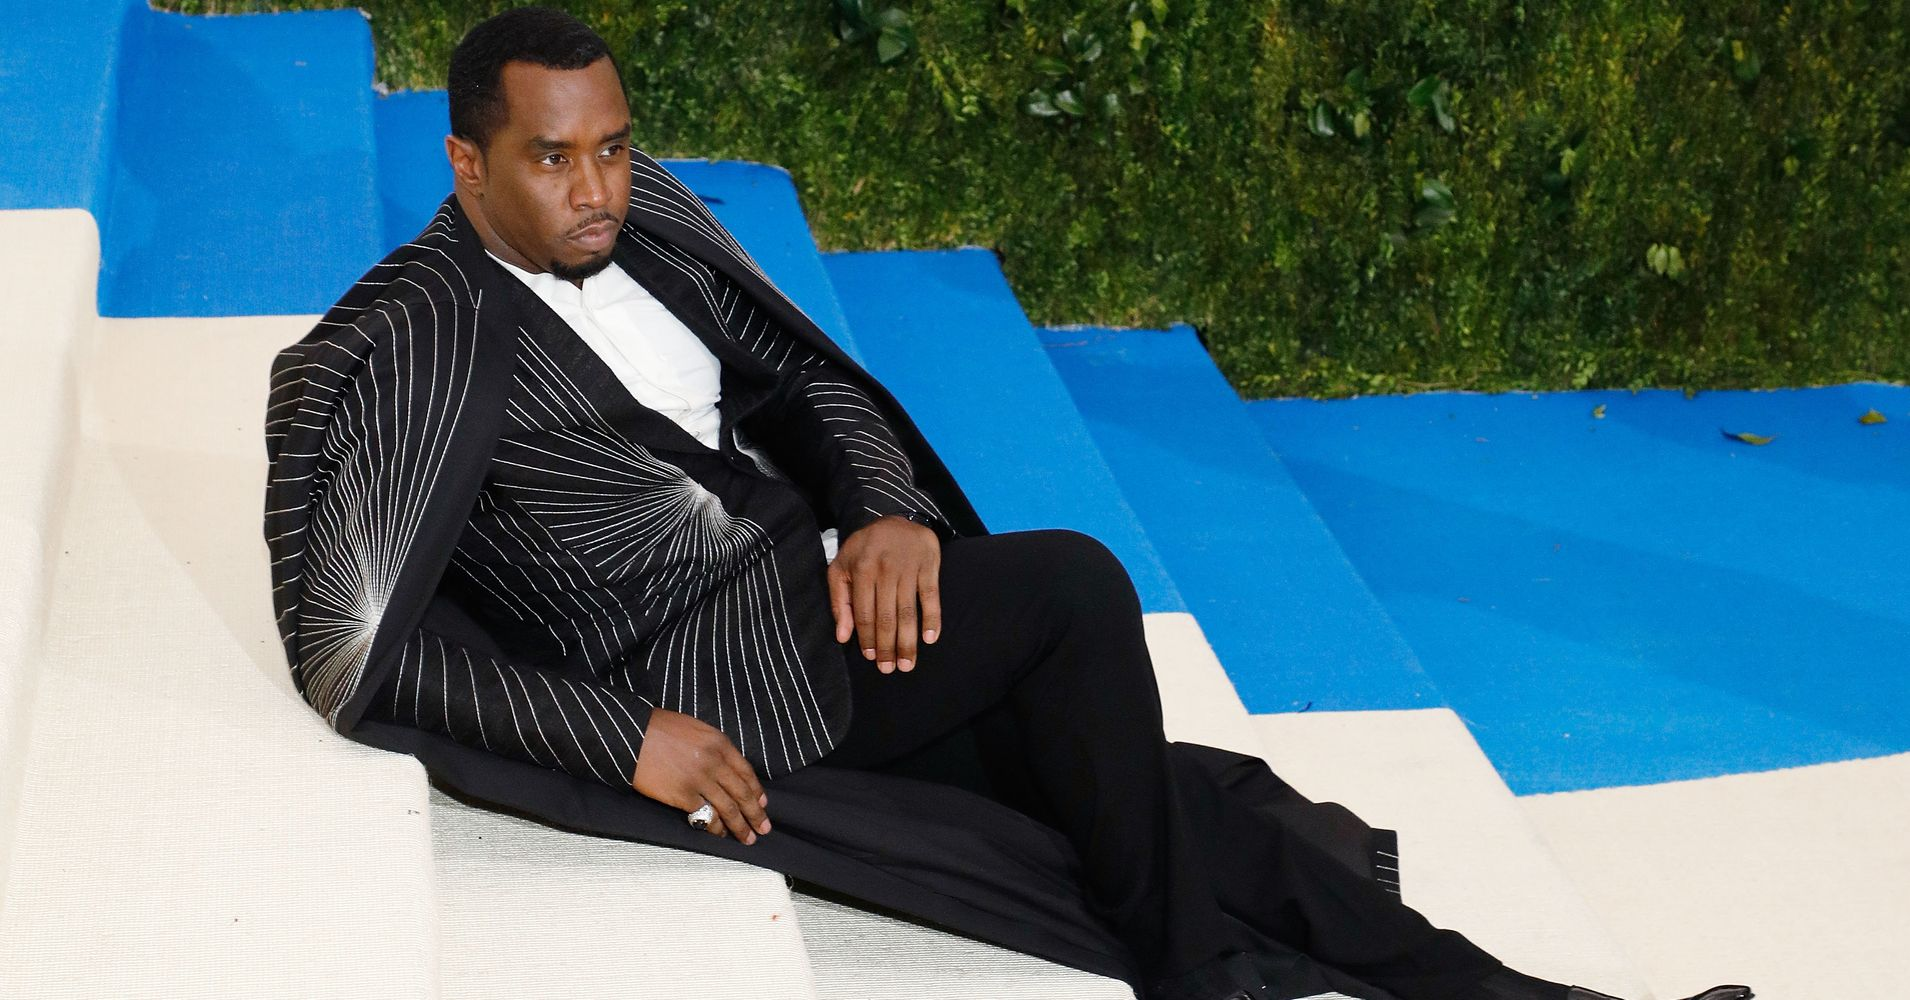 Diddy Takes A Seat On The Steps At Met Gala Becomes A